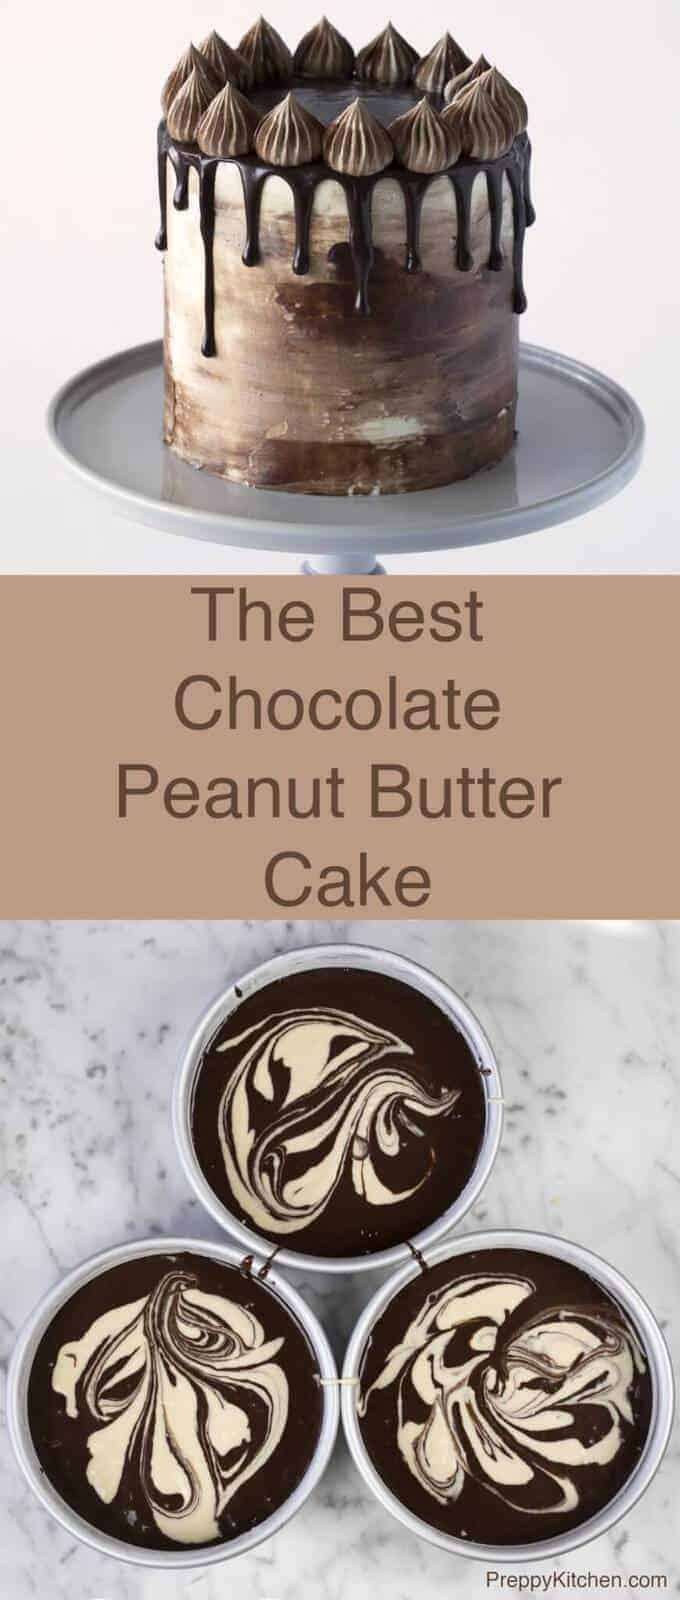 A super-rich chocolate cake, with swirls of peanut butter batter covered in peanut butter frosting then finished off with Italian buttercream and more chocolate